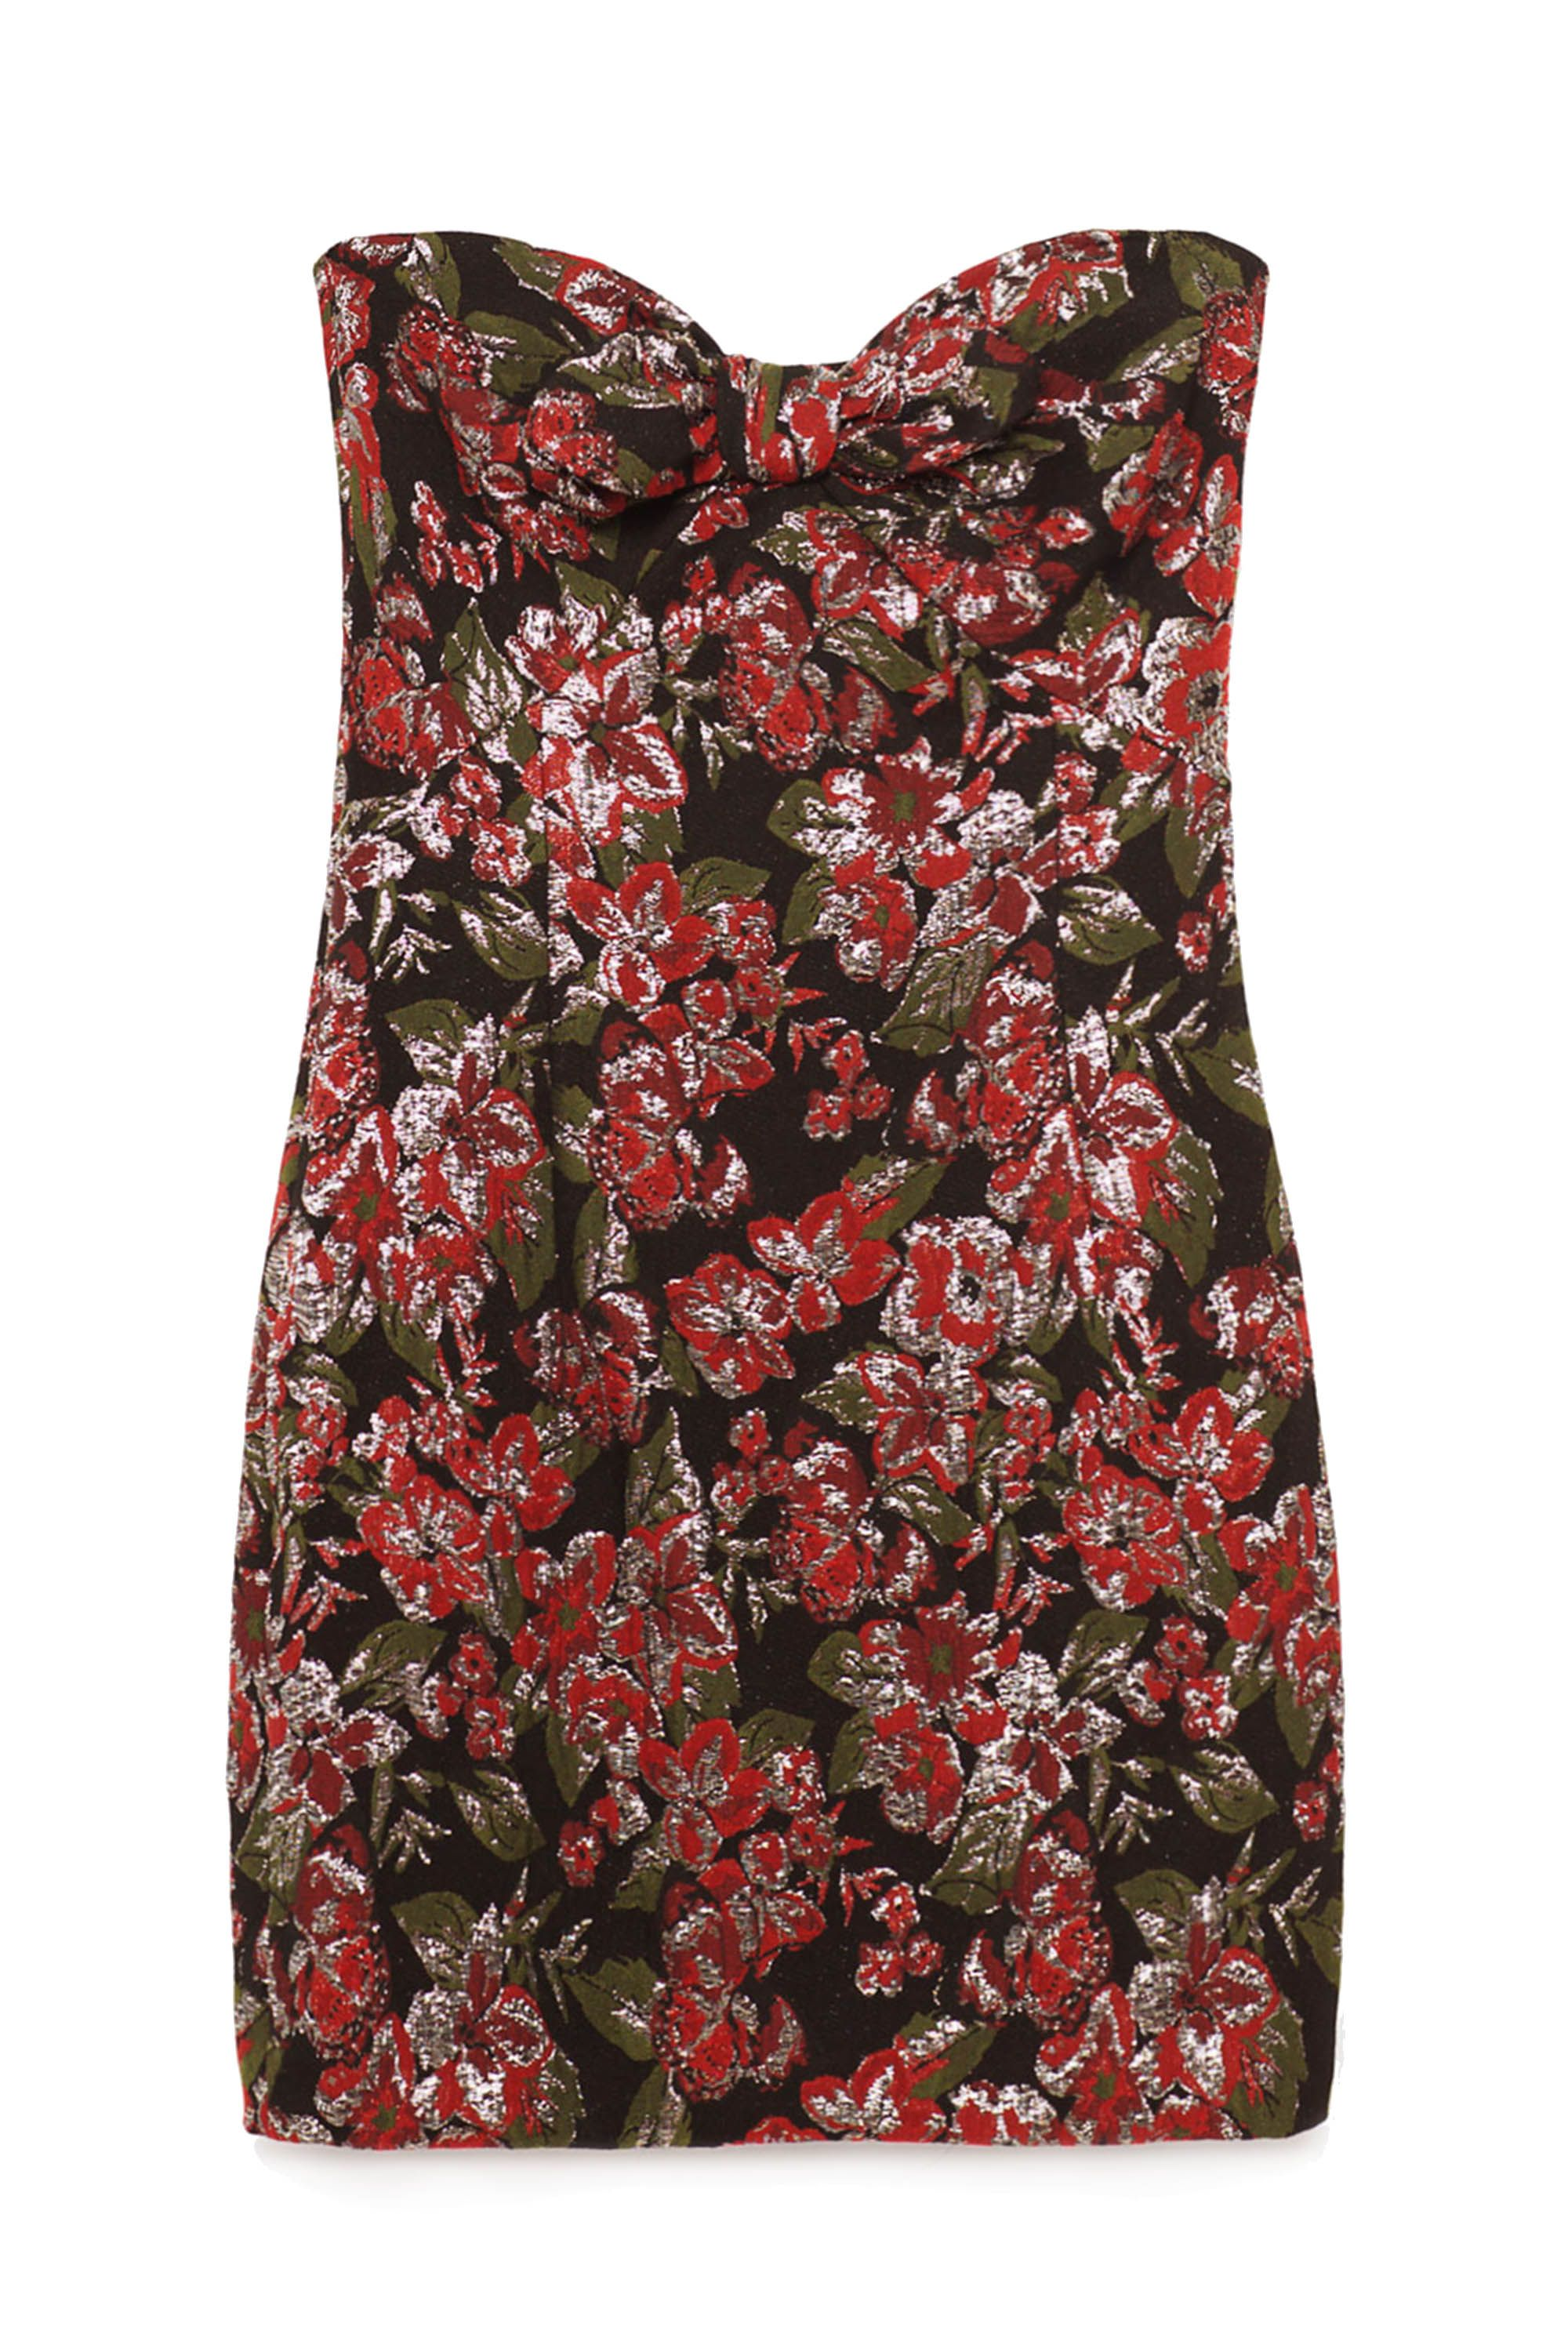 "<p>Zara Jacquard Mini Dress, $70; <a href=""http://www.zara.com/us/en/woman/dresses/jacquard-mini-dress-c269185p3919038.html"" target=""_blank"">zara.com</a></p>"